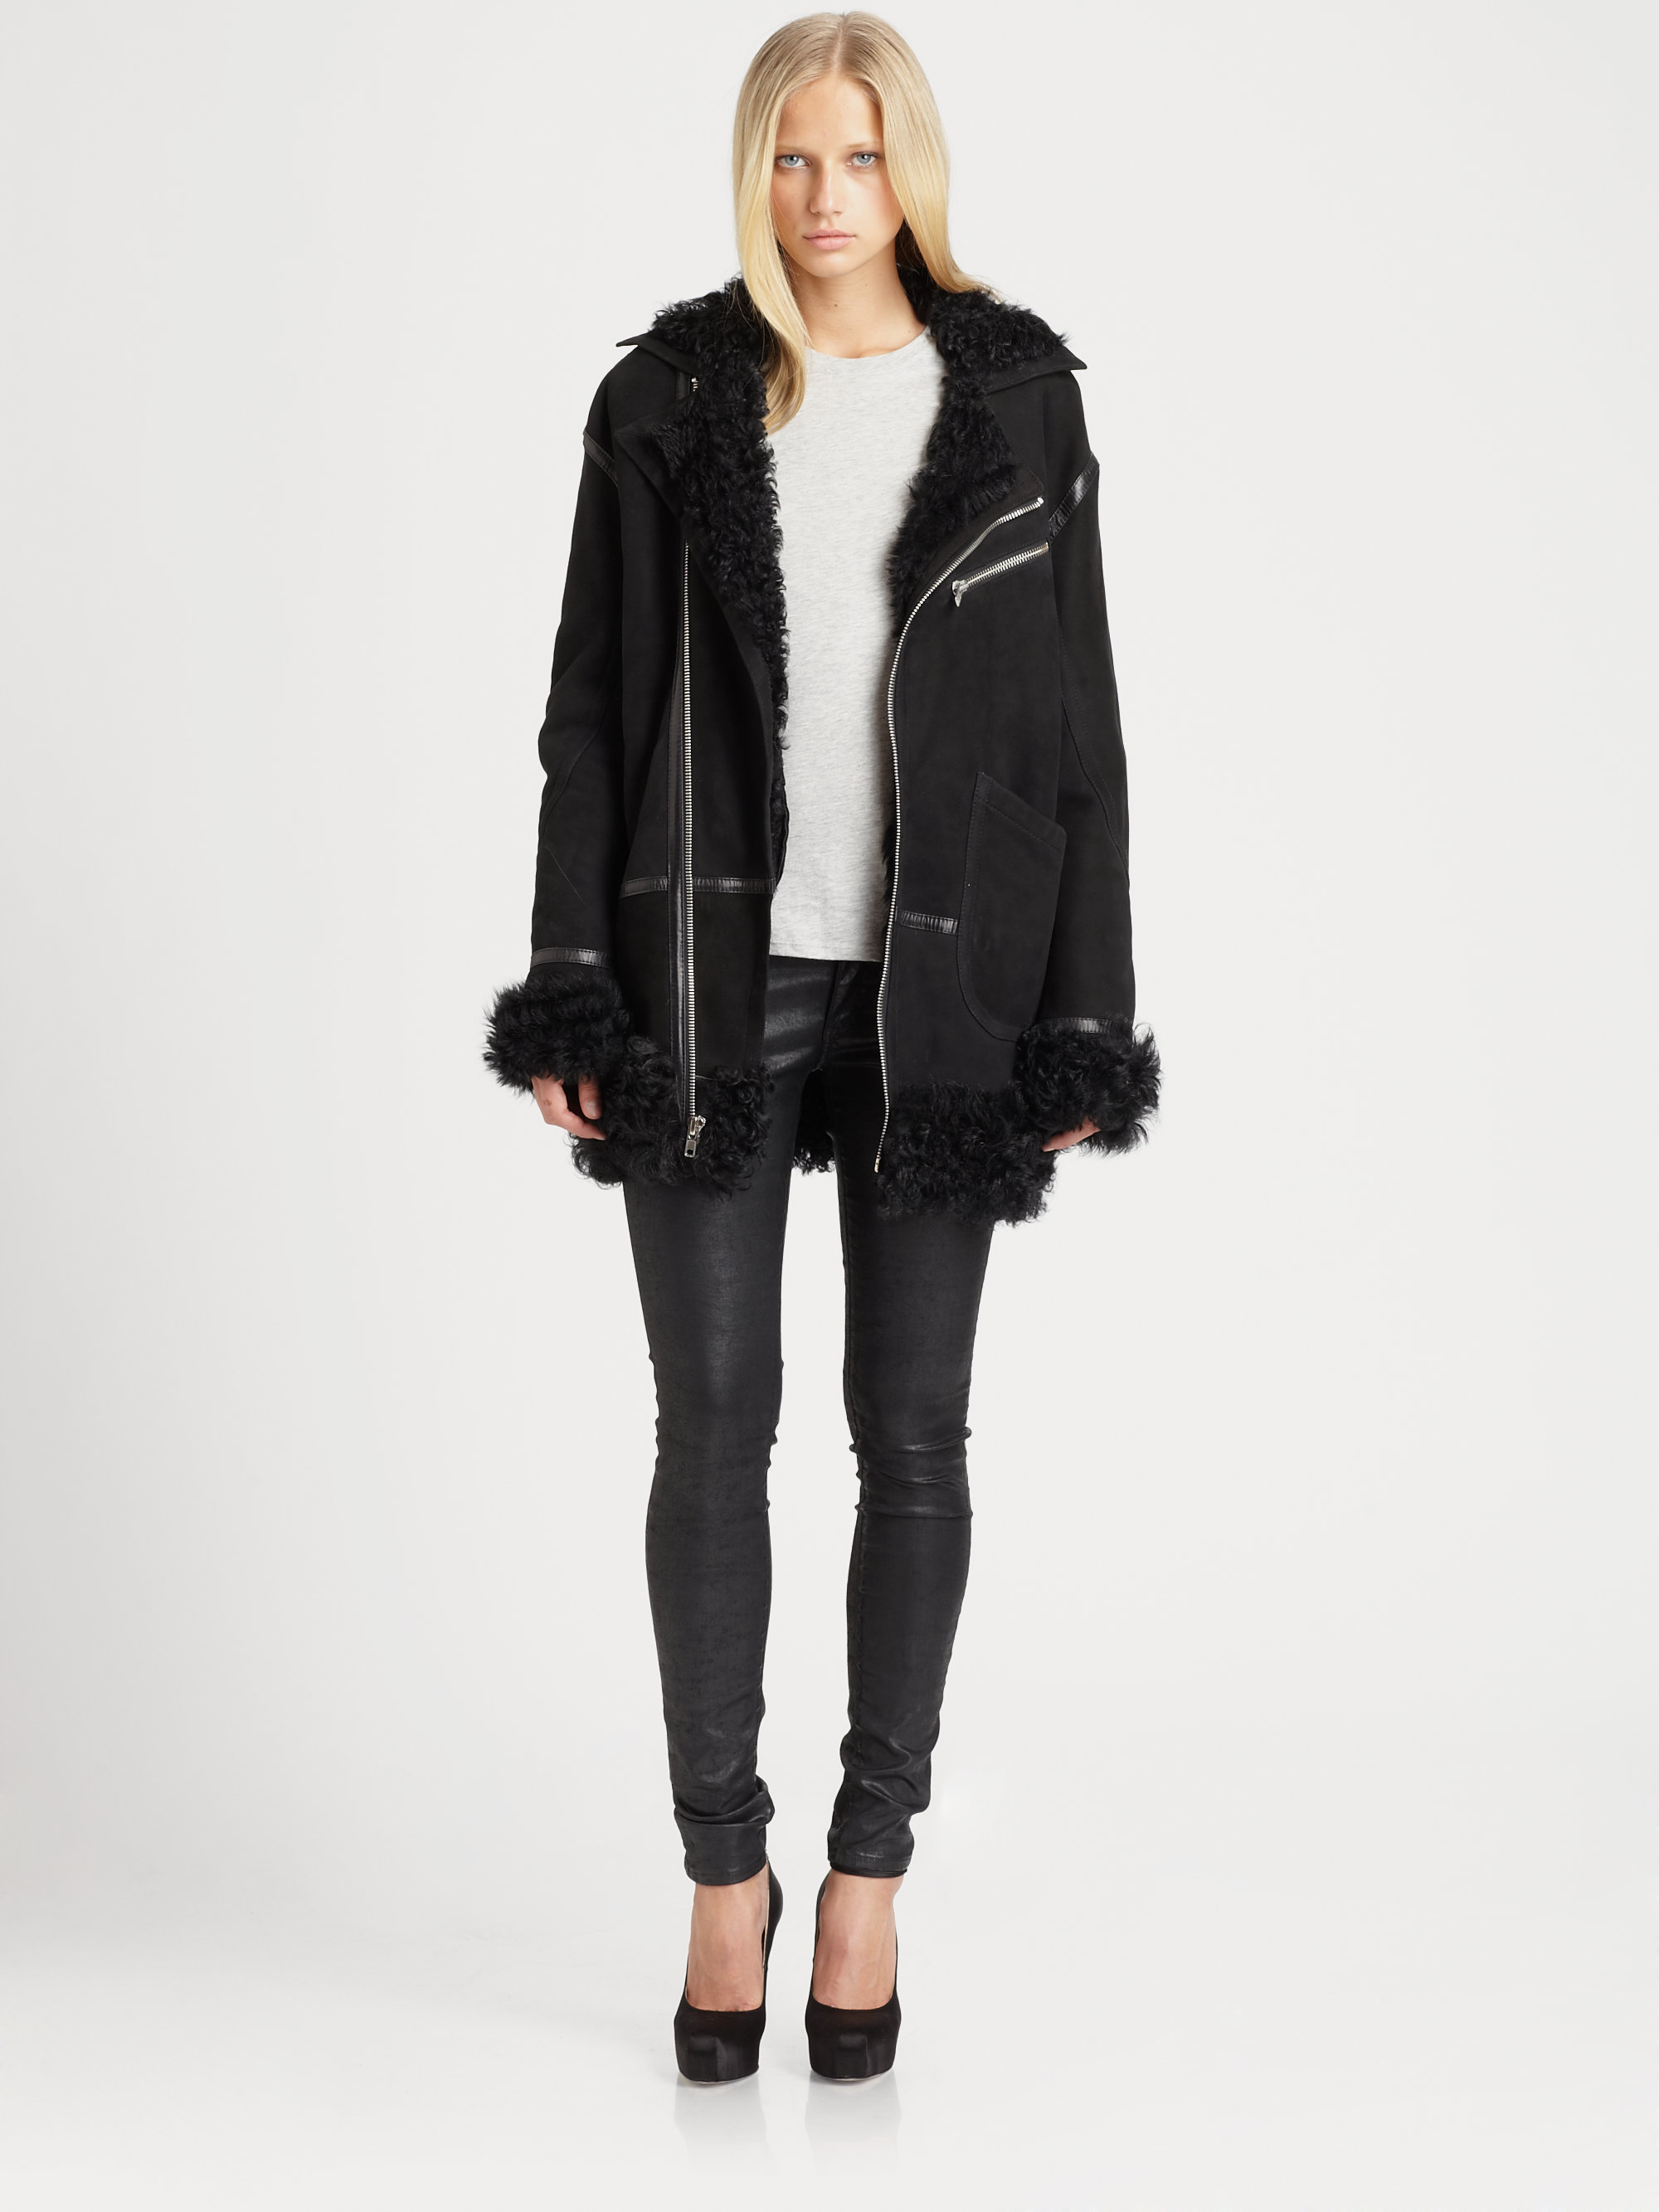 Blk dnm Leather Shearling Jacket in Black | Lyst